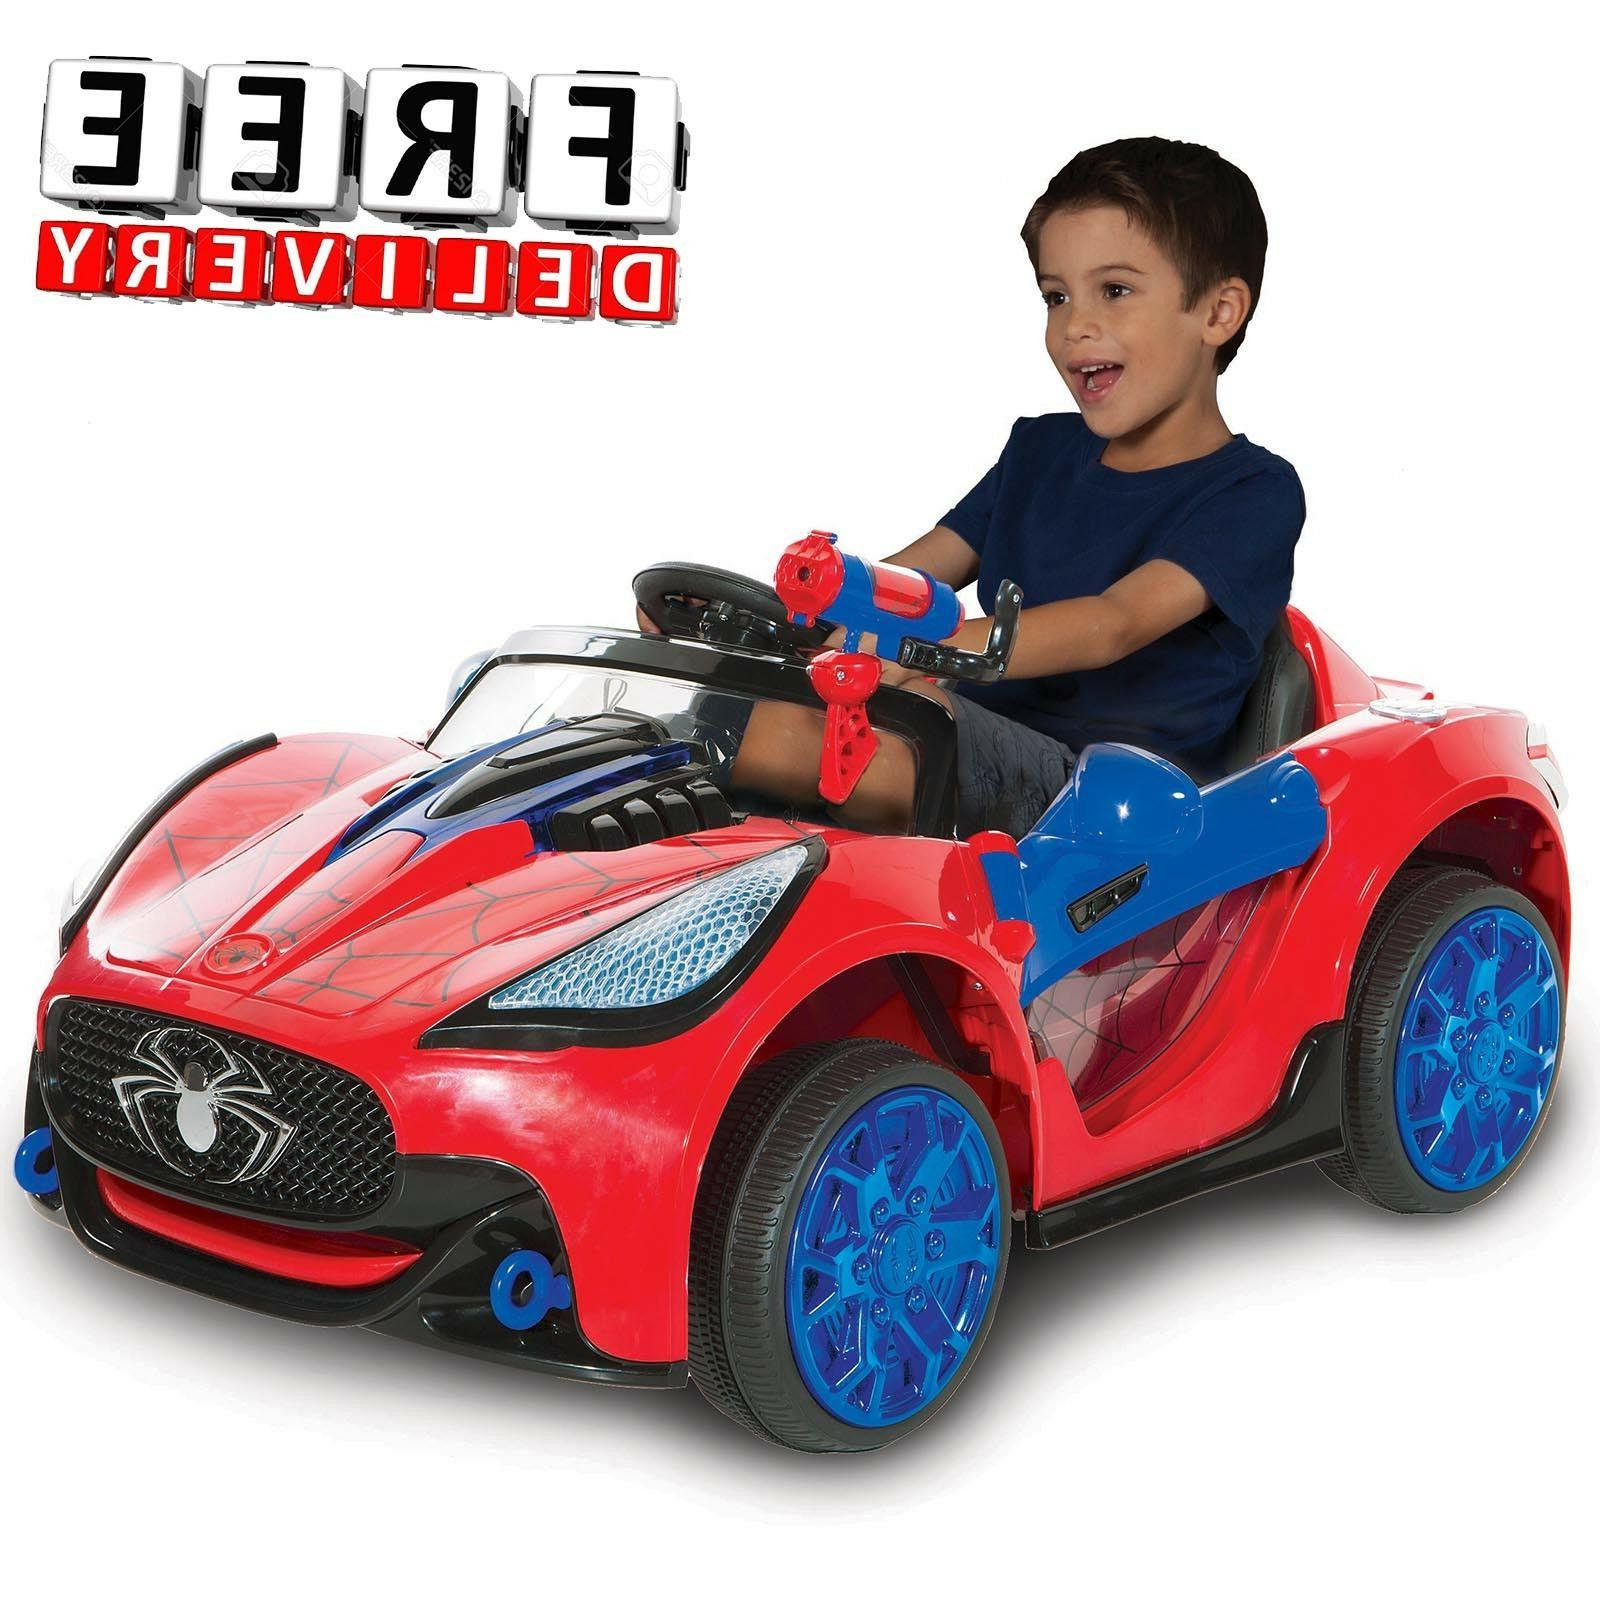 Electric Vehicles For Kids >> Kids Electric Vehicles Ride Toys Ridetoys Biz